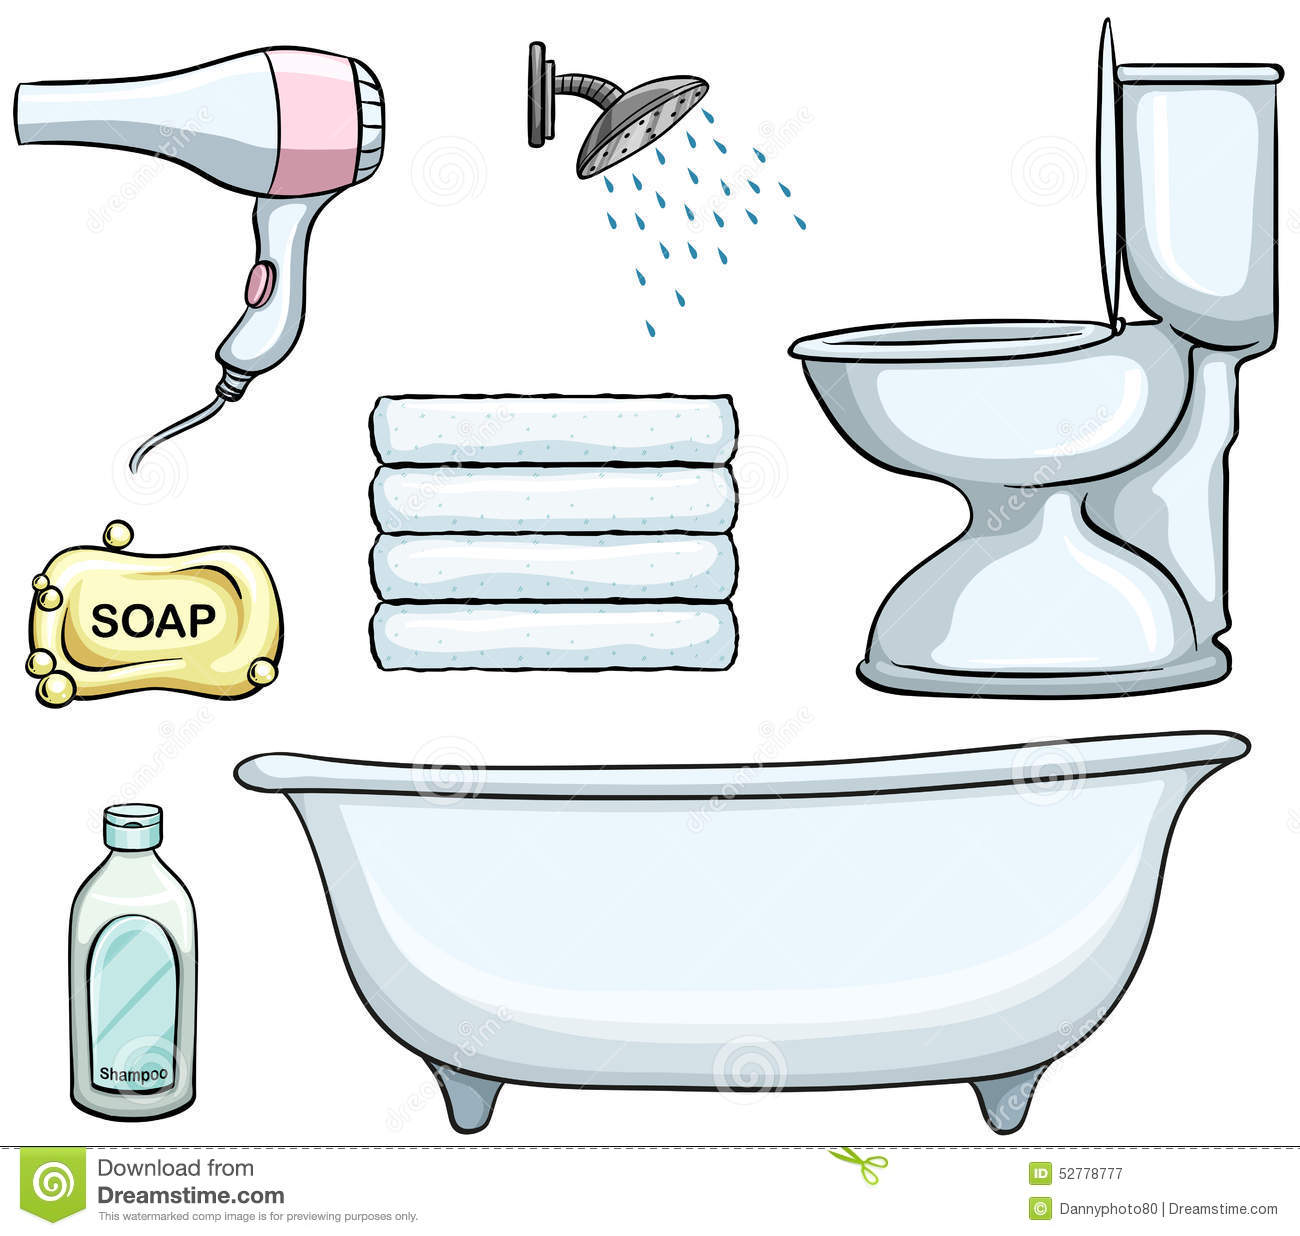 Cartoon Pictures Of Bathrooms: Bathroom Objects Stock Vector. Illustration Of Background